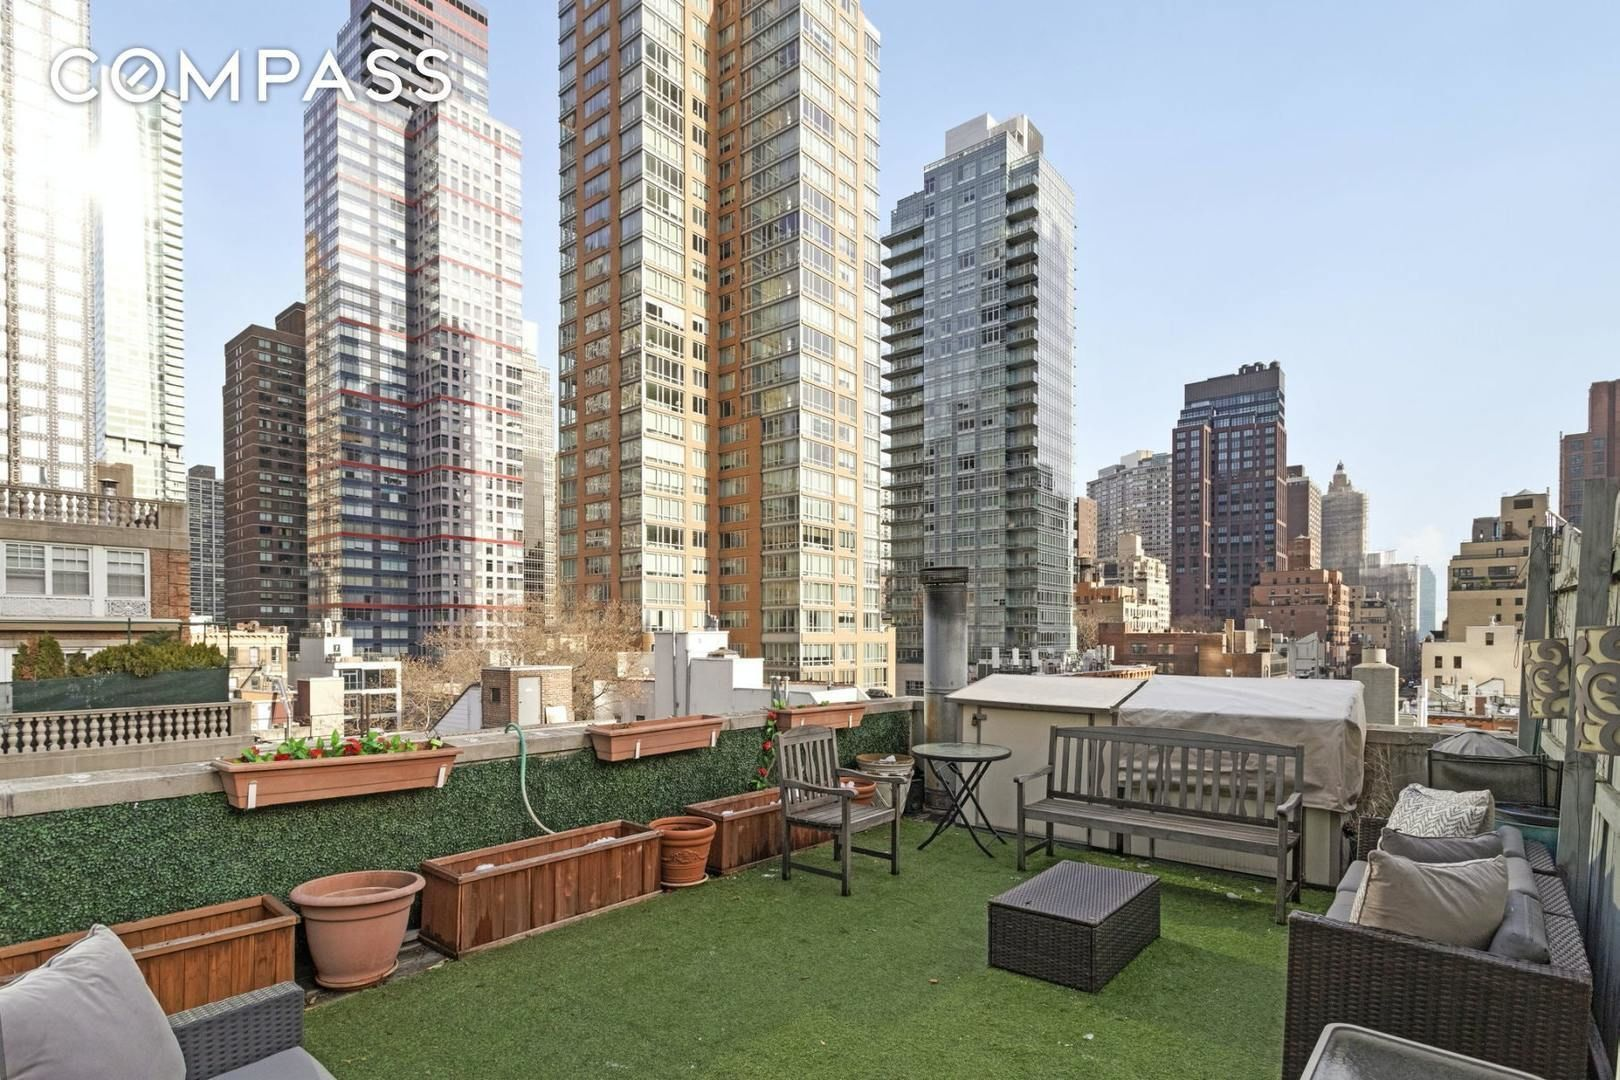 Apartment for sale at 230 East 52nd Street, Apt PH-AB